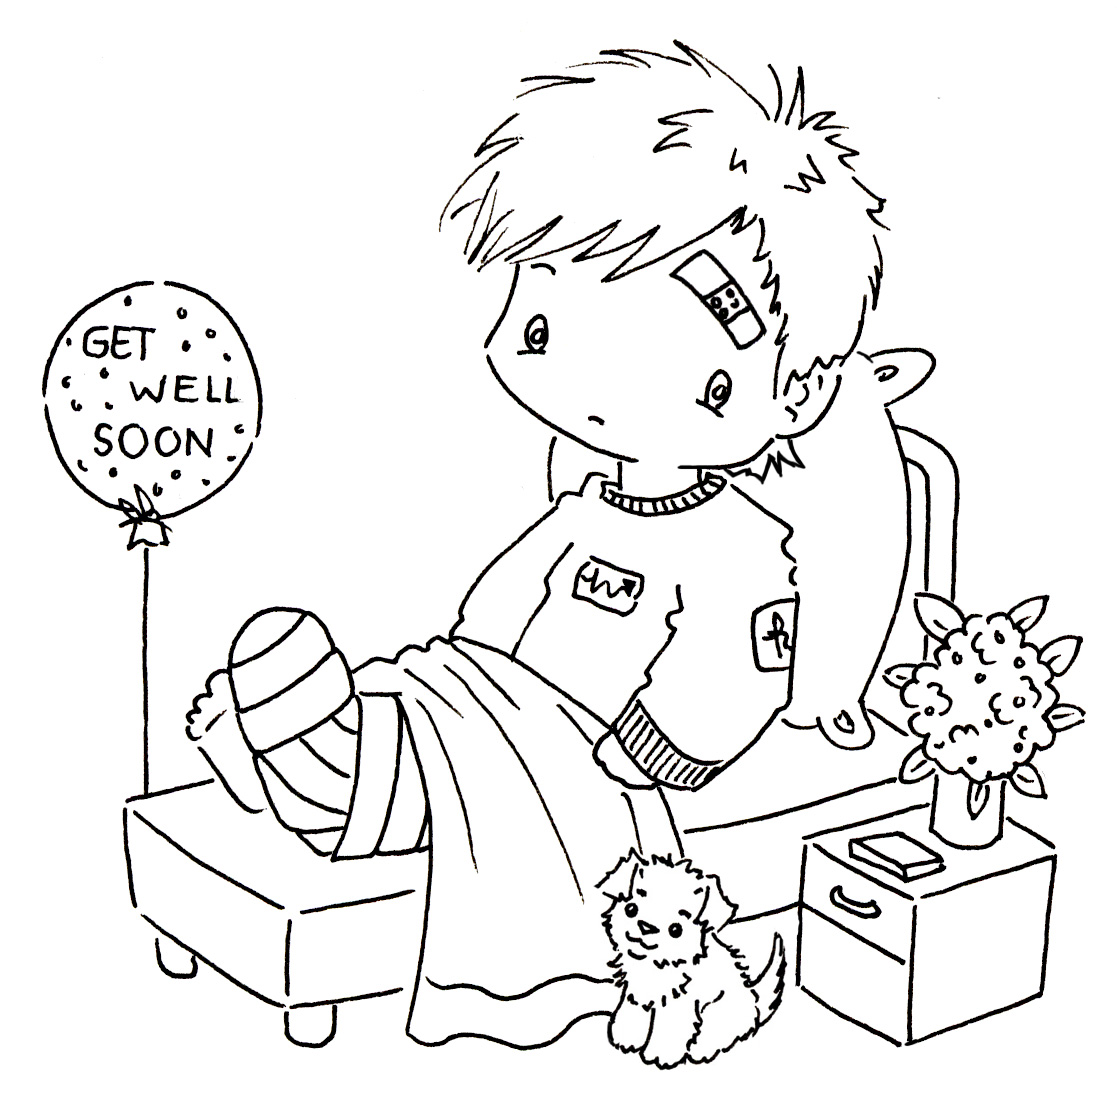 kids get well coloring pages - photo#36